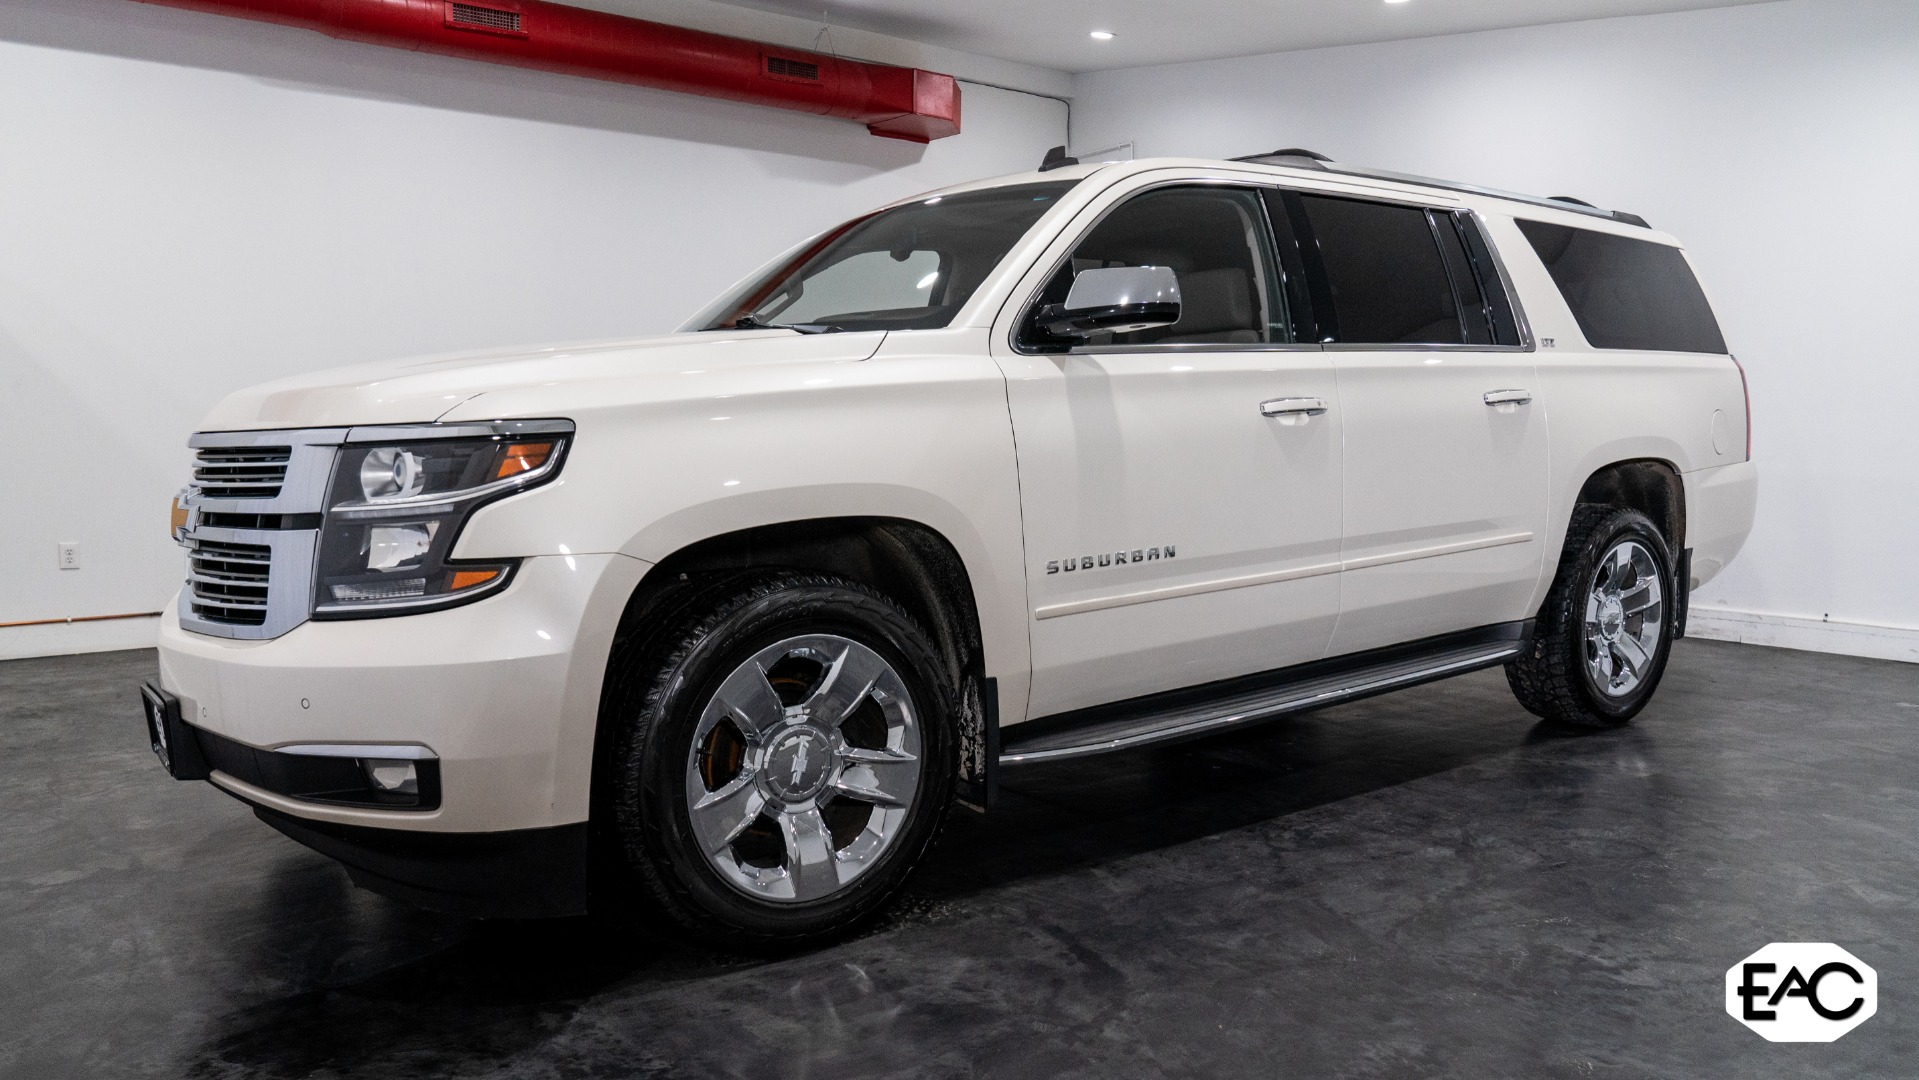 Used 2015 Chevrolet Suburban LTZ 1500 for sale Sold at Empire Auto Collection in Warren MI 48091 1